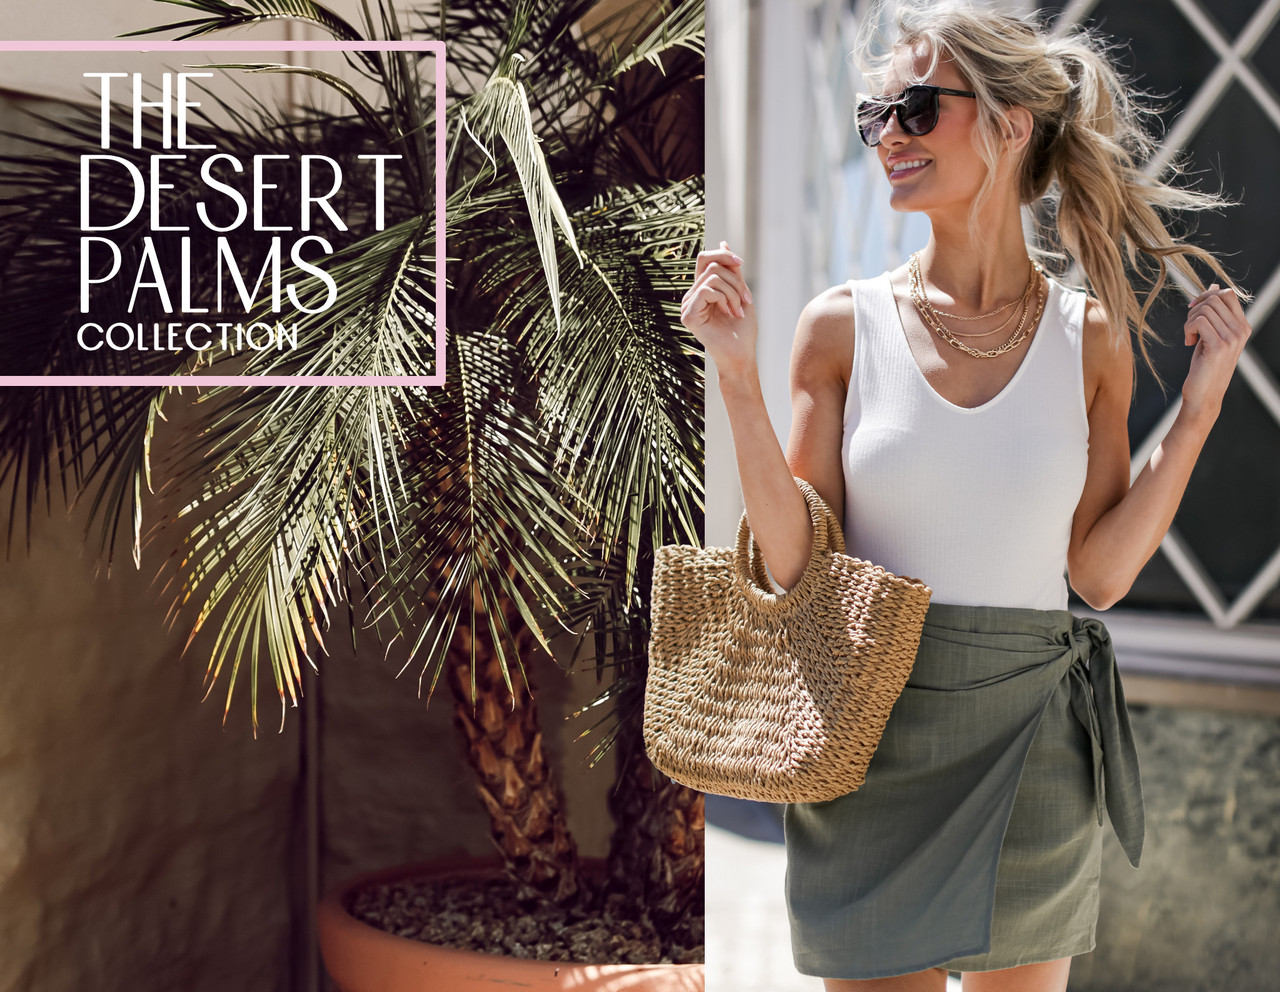 the desert palms collection - model wearing white tank and olive wrap skirt with a straw bag and sunglasses